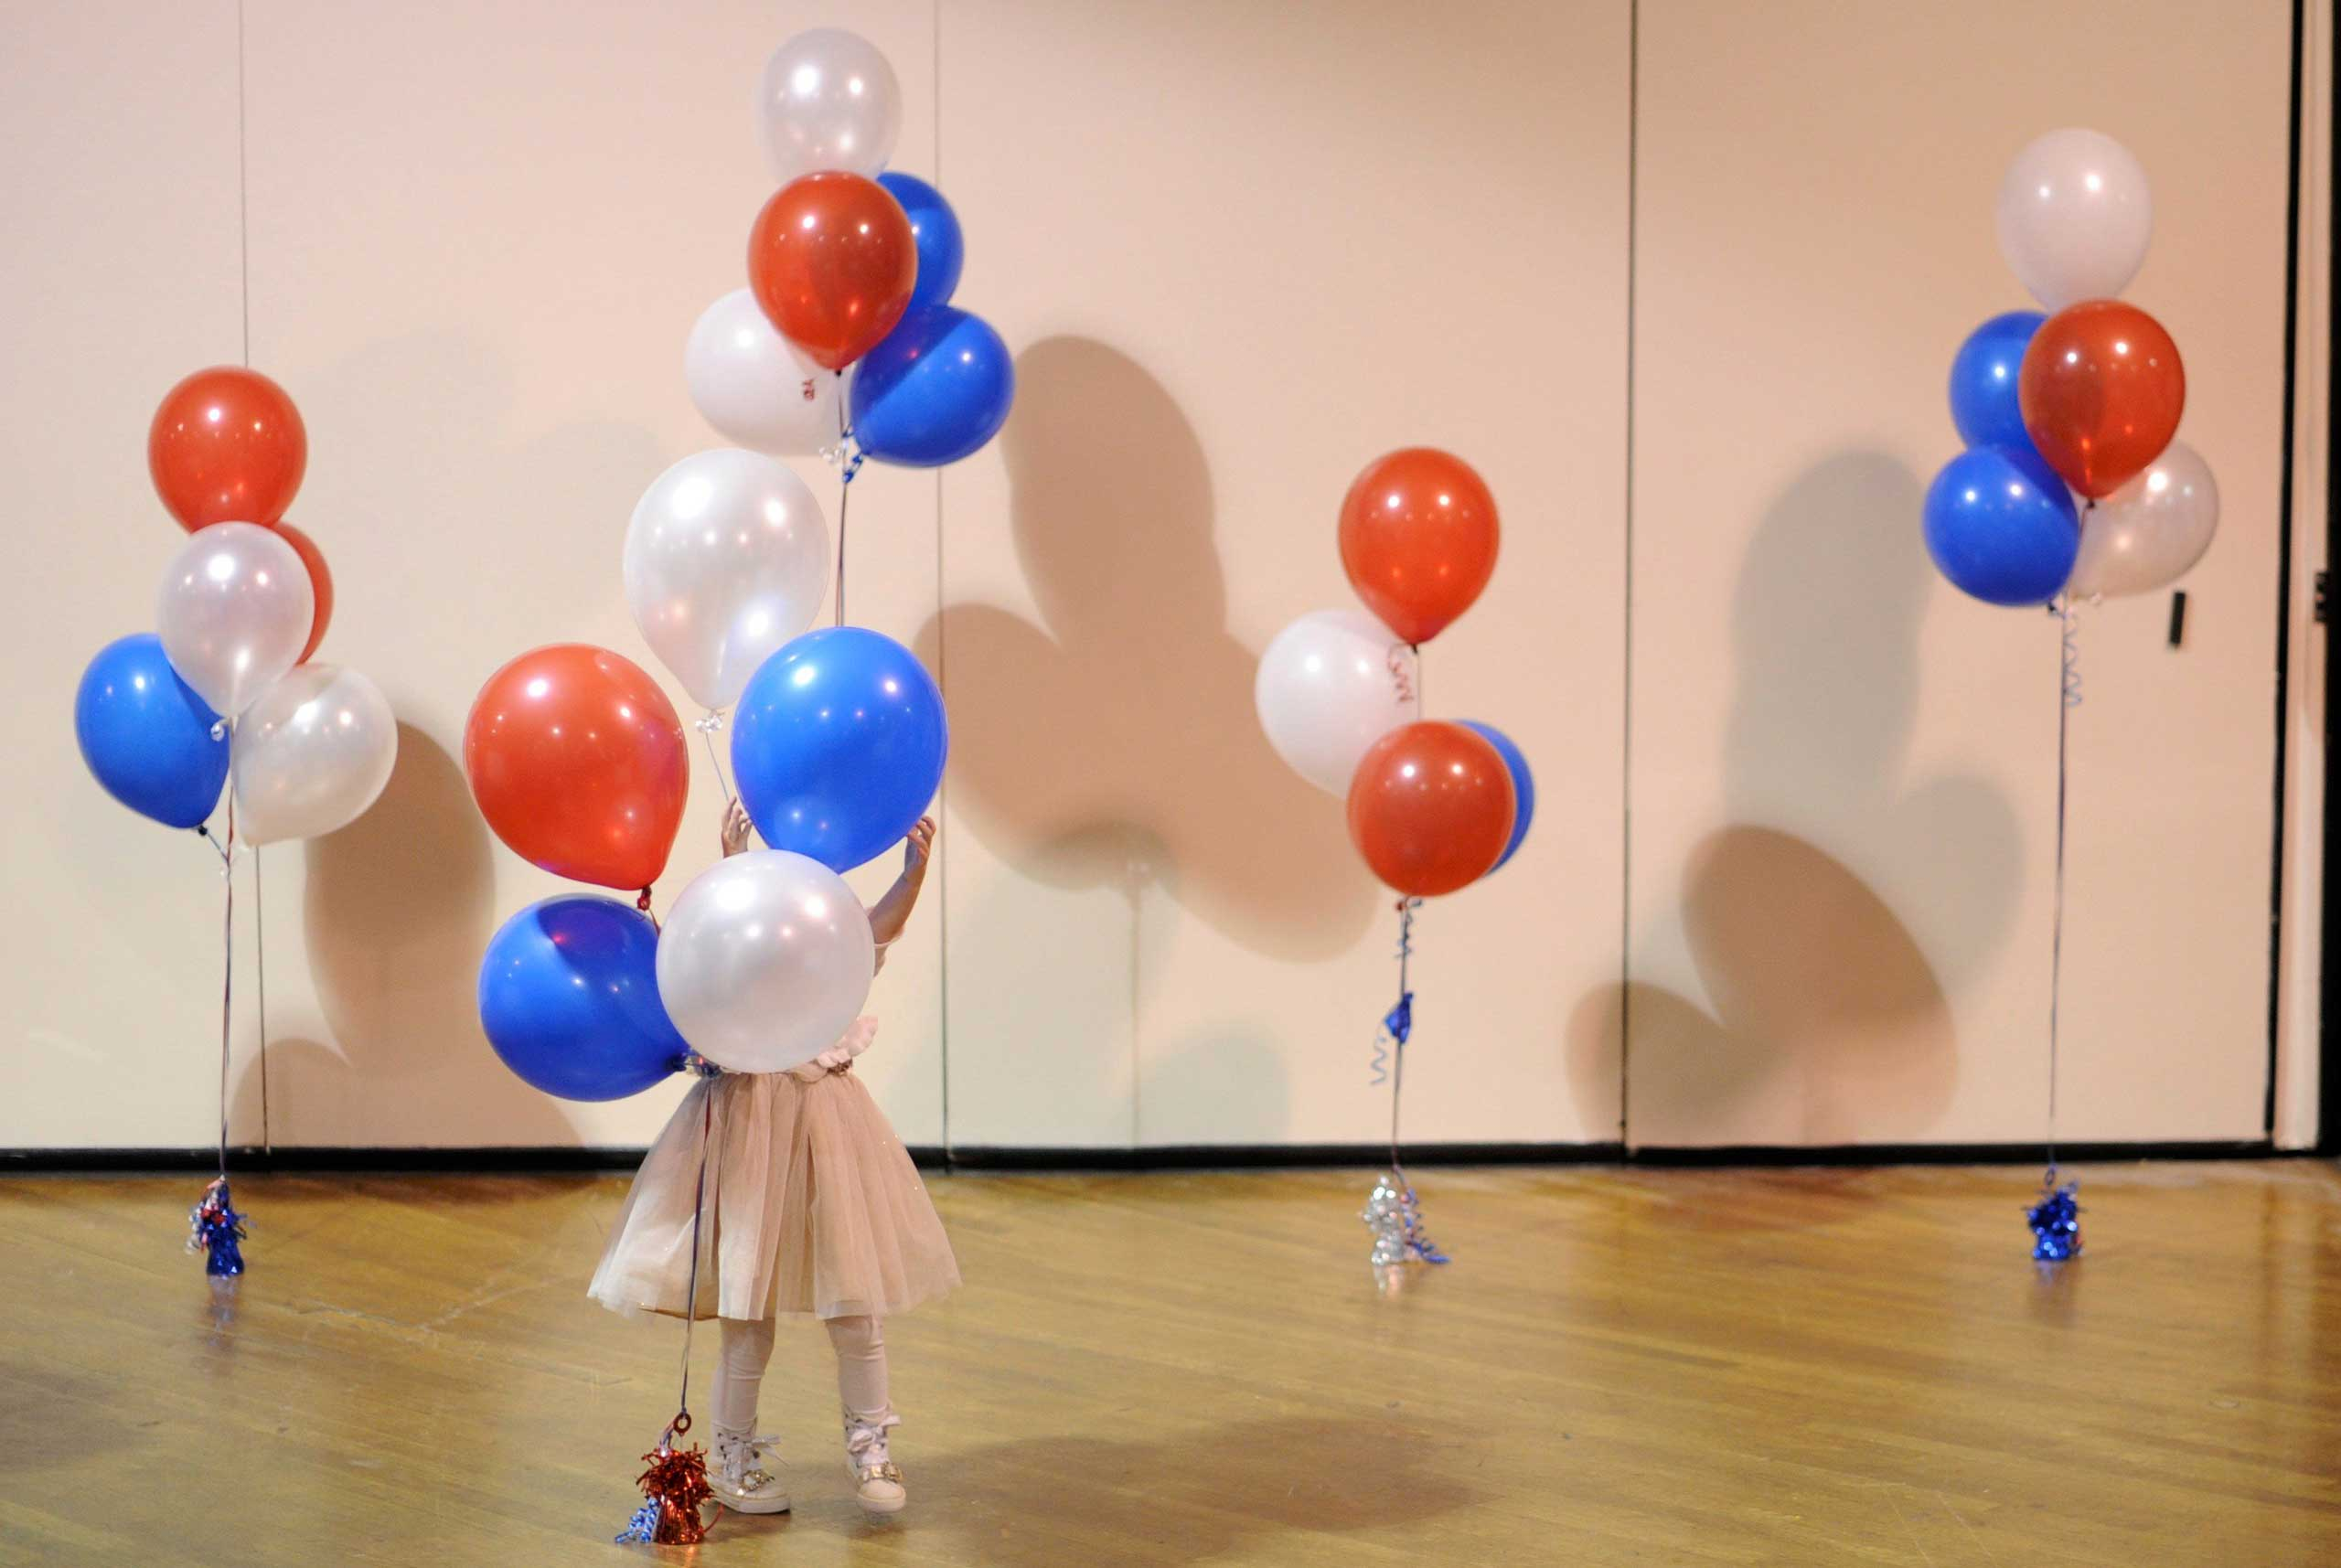 Nov. 4, 2014. A girl plays with balloons at Republican U.S. Senate candidate Scott Brown's midterm election night rally in Manchester, N.H.